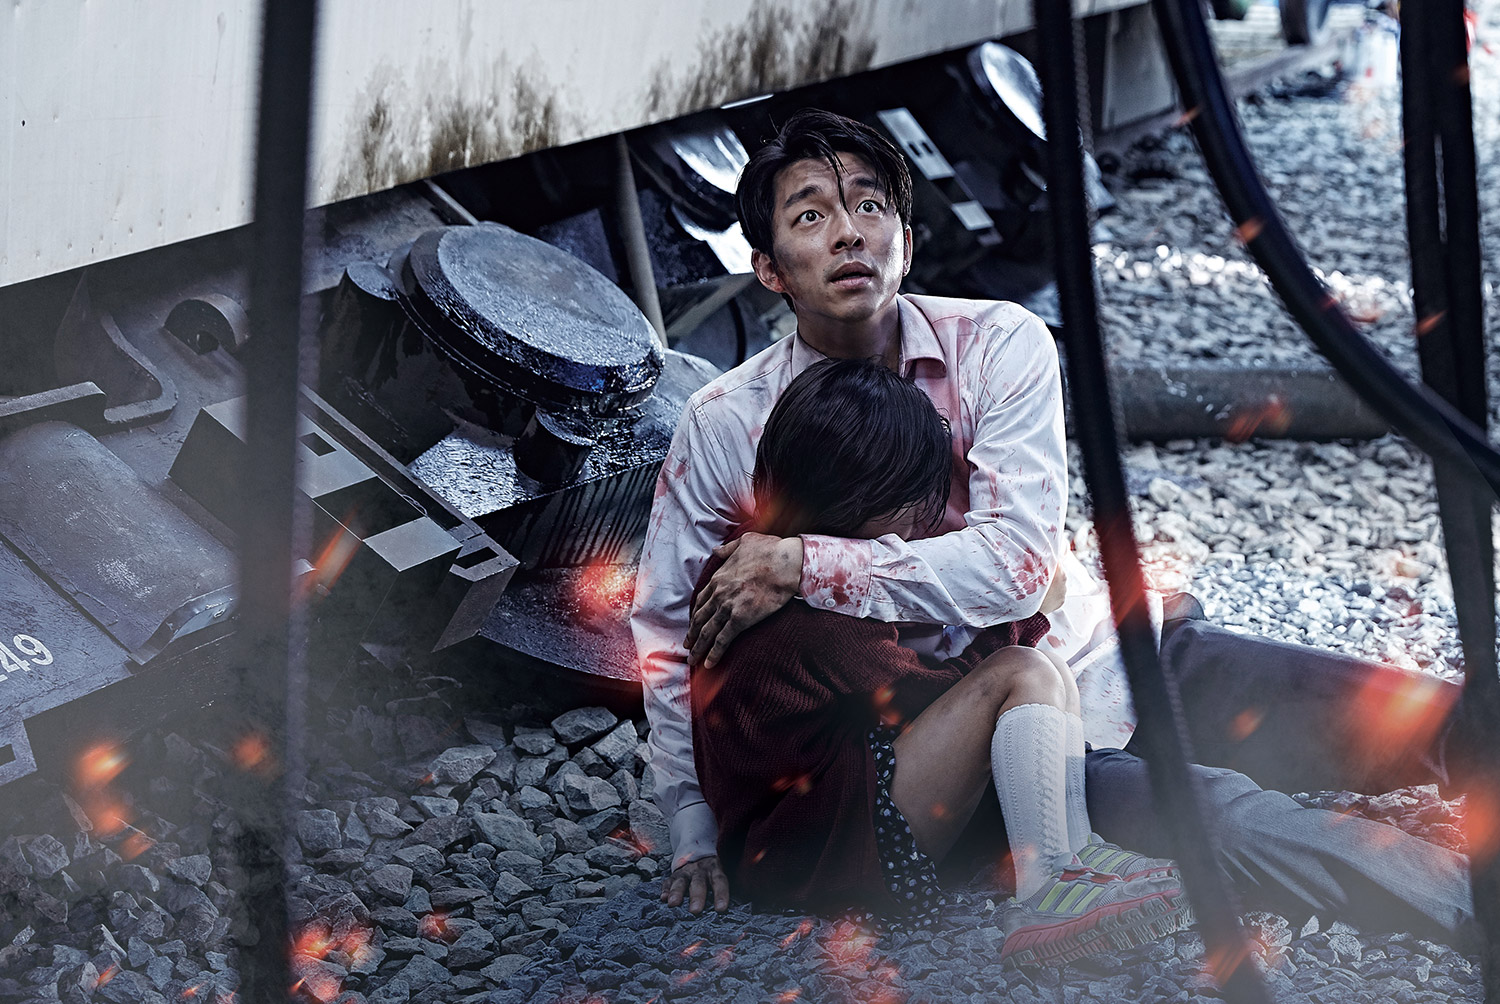 Post-Apocalyptic Movies - Train to Busan, holding child